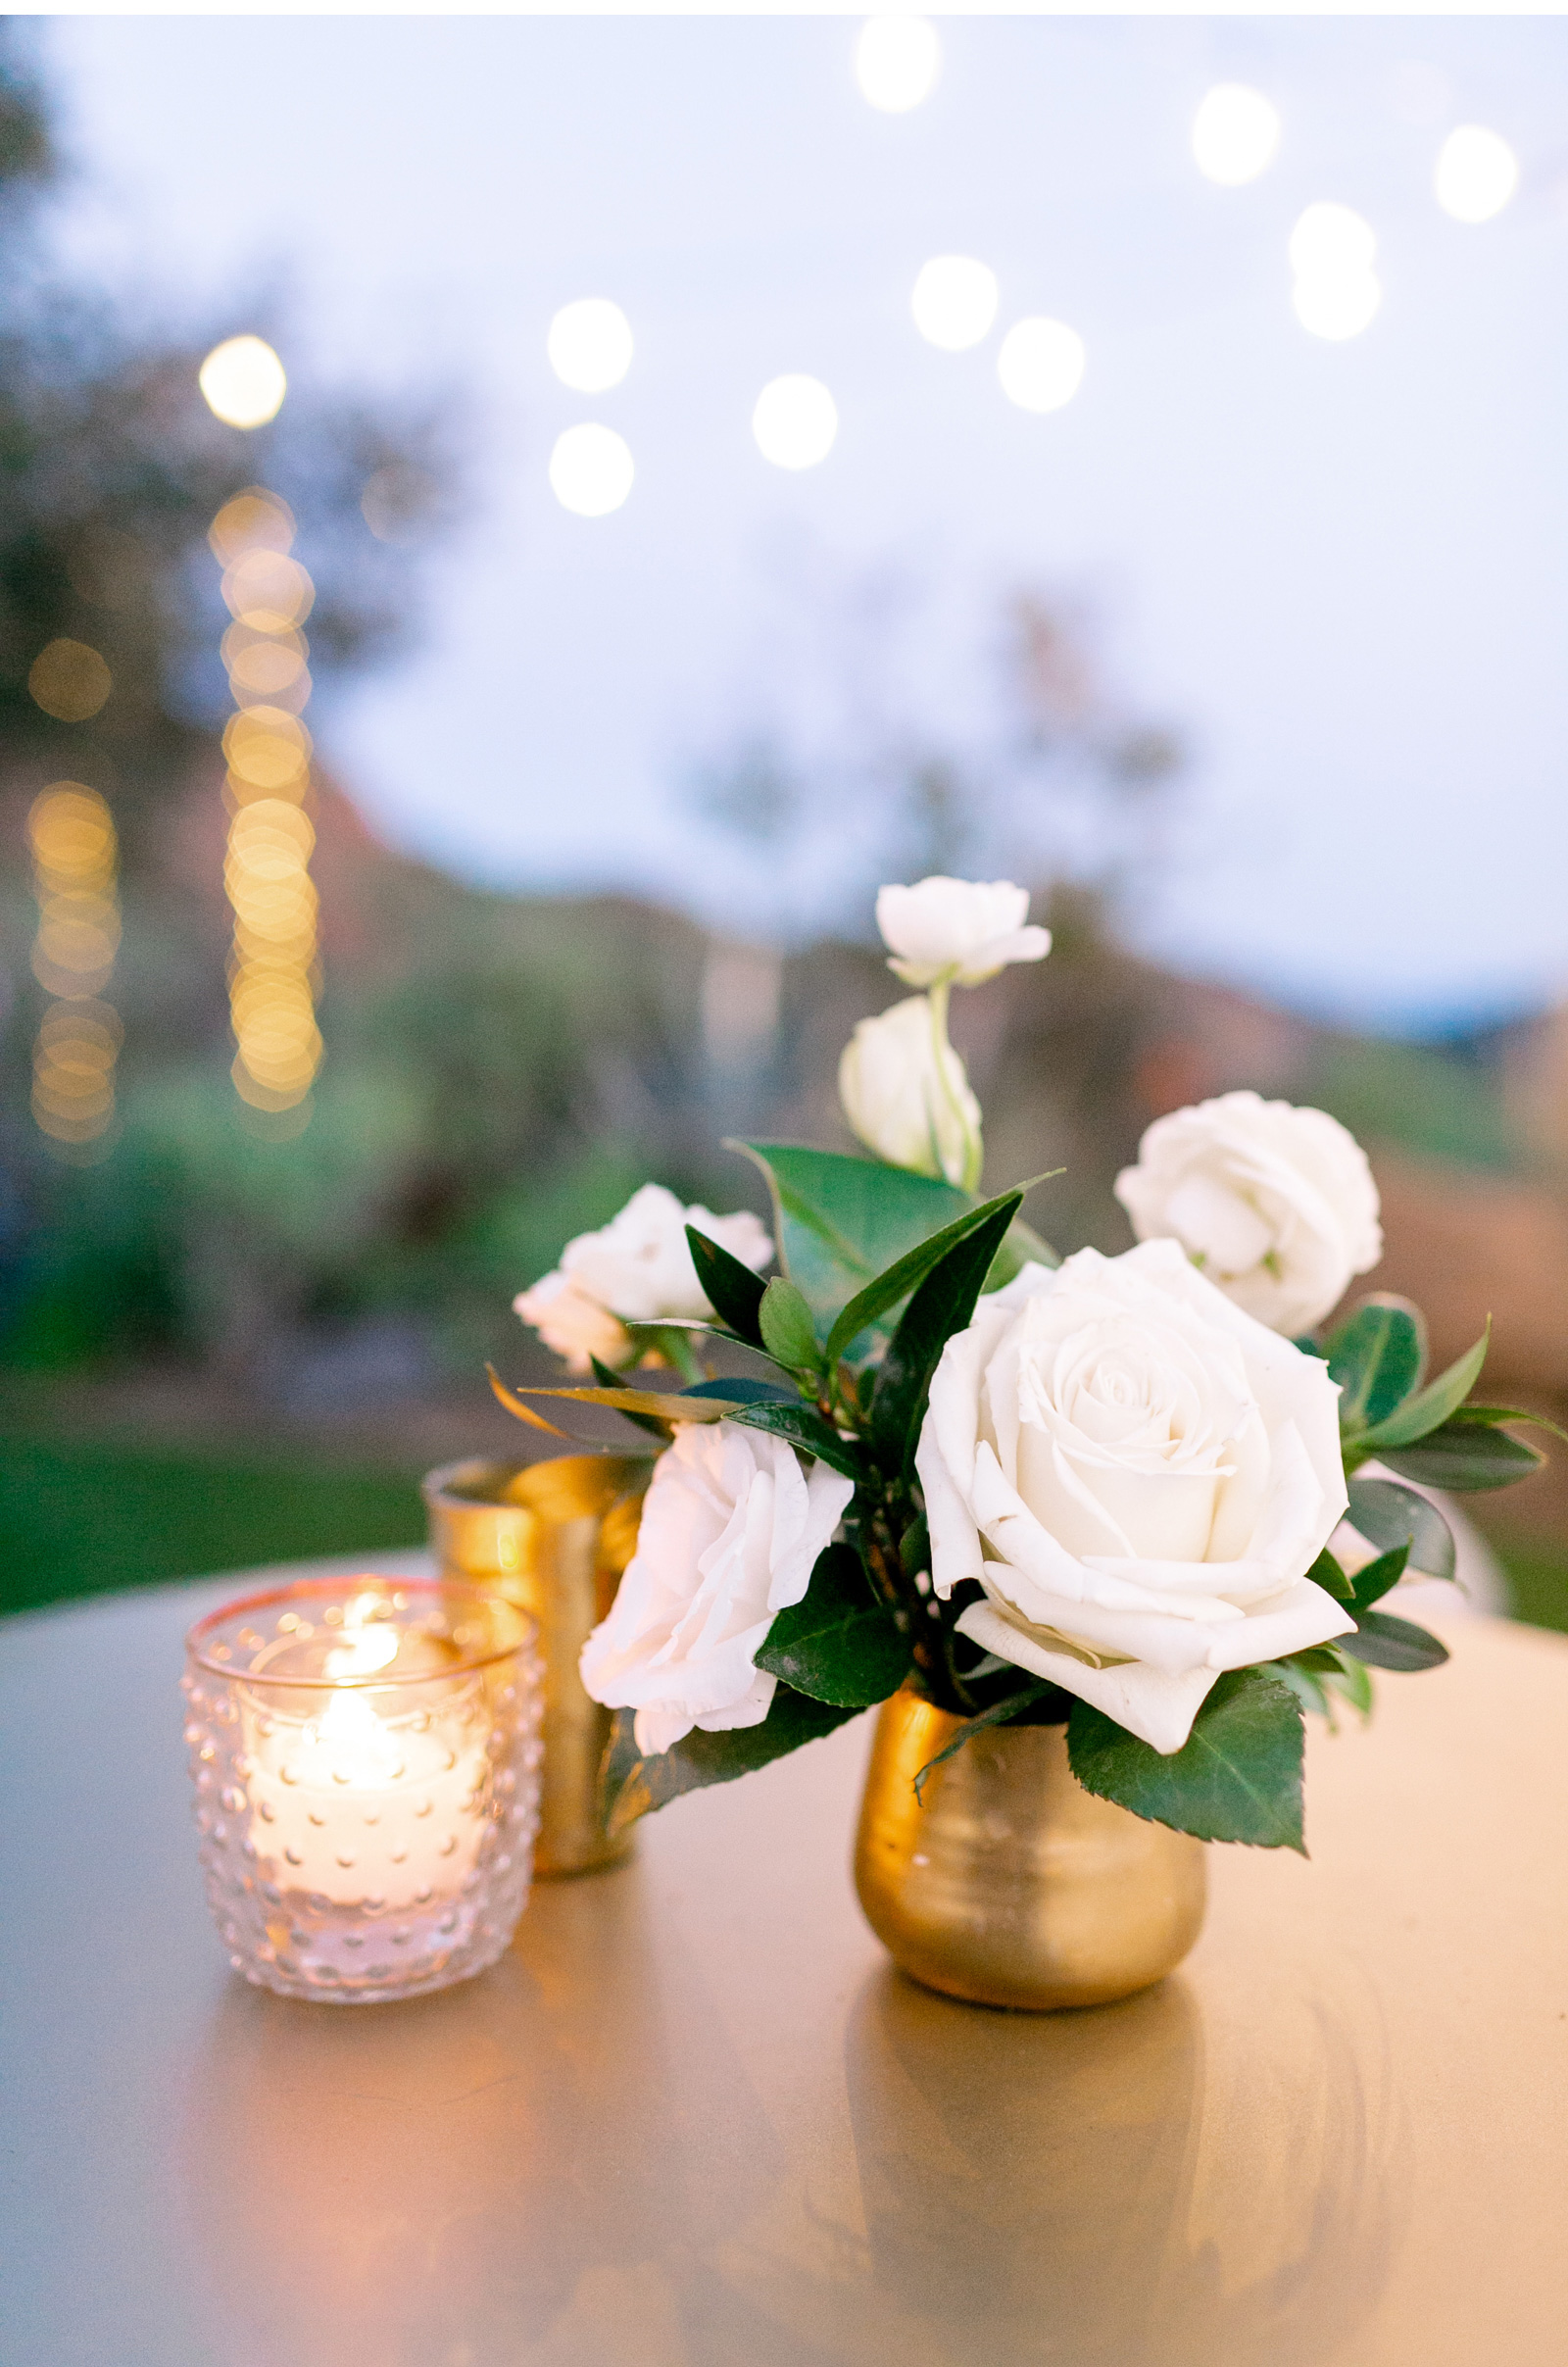 Malibu-Rocky-Oaks-Photographer-West-Coast-Wedding-Style-Me-Pretty-Malibu-Wedding-Natalie-Schutt-Photography_01.jpg